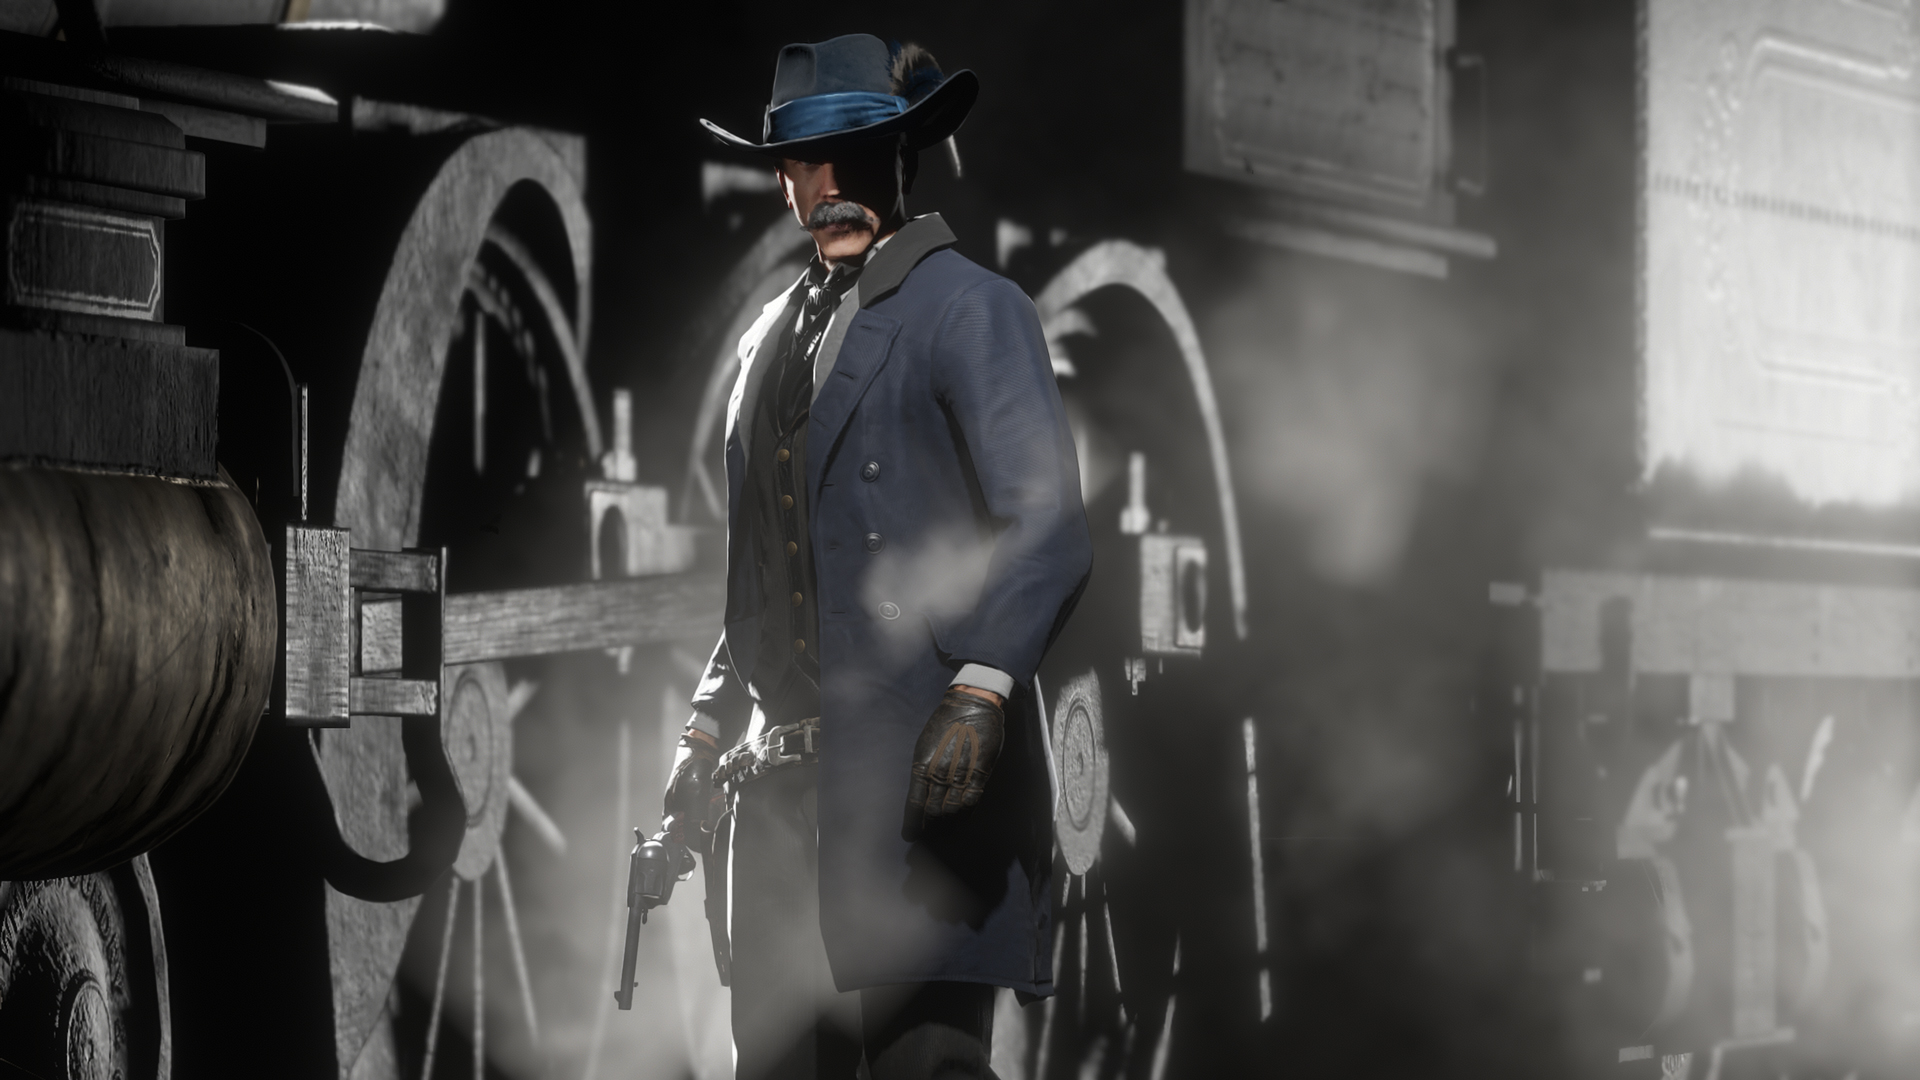 Red Dead Online adds new Public Enemy mode, and Railroad Baron free roam event - VG247